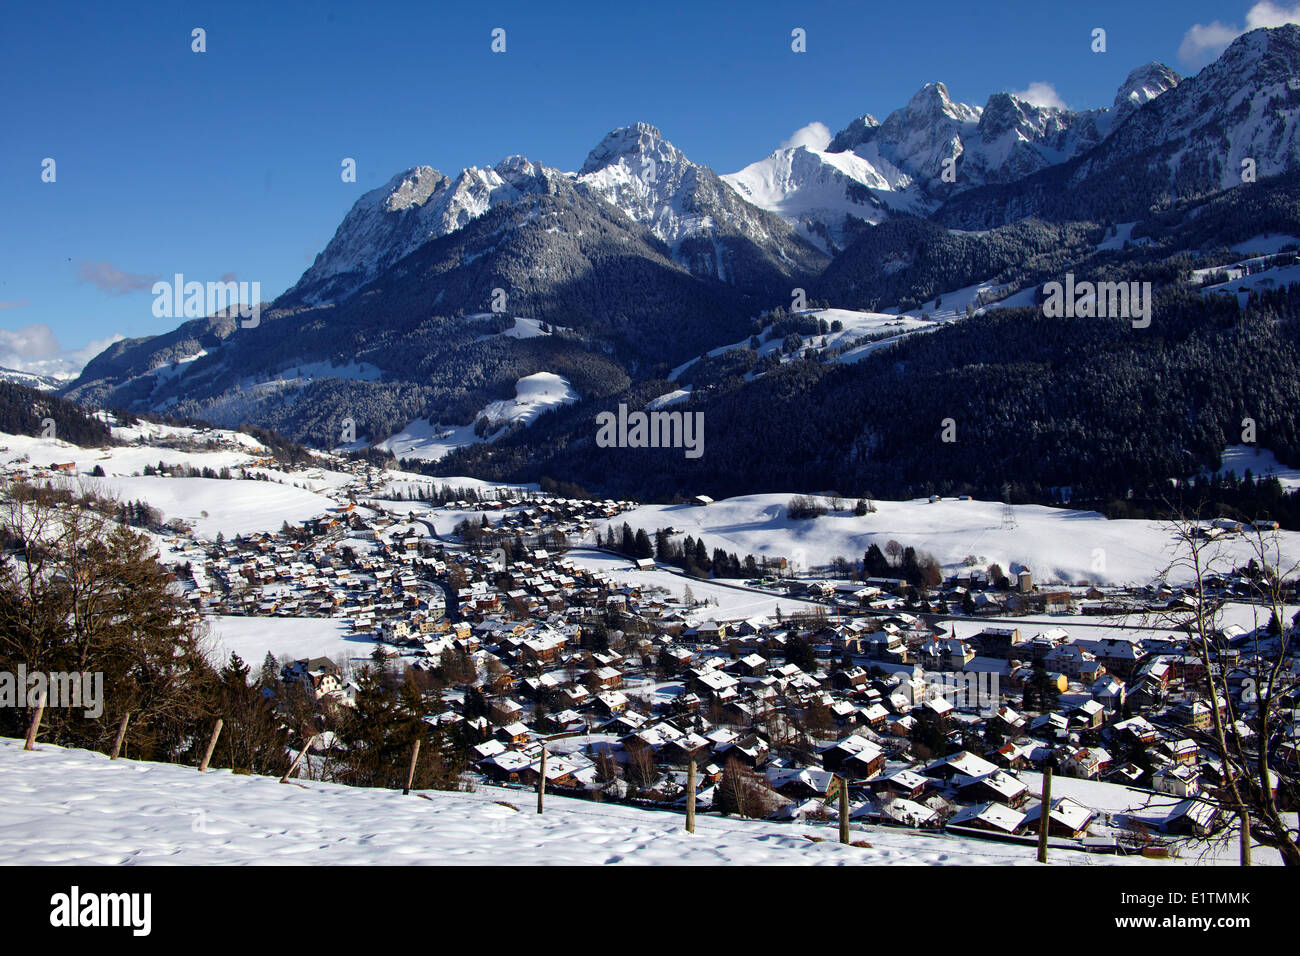 Europe, Switzerland, Vaud Canton, Chateau d'Oex city Stock Photo